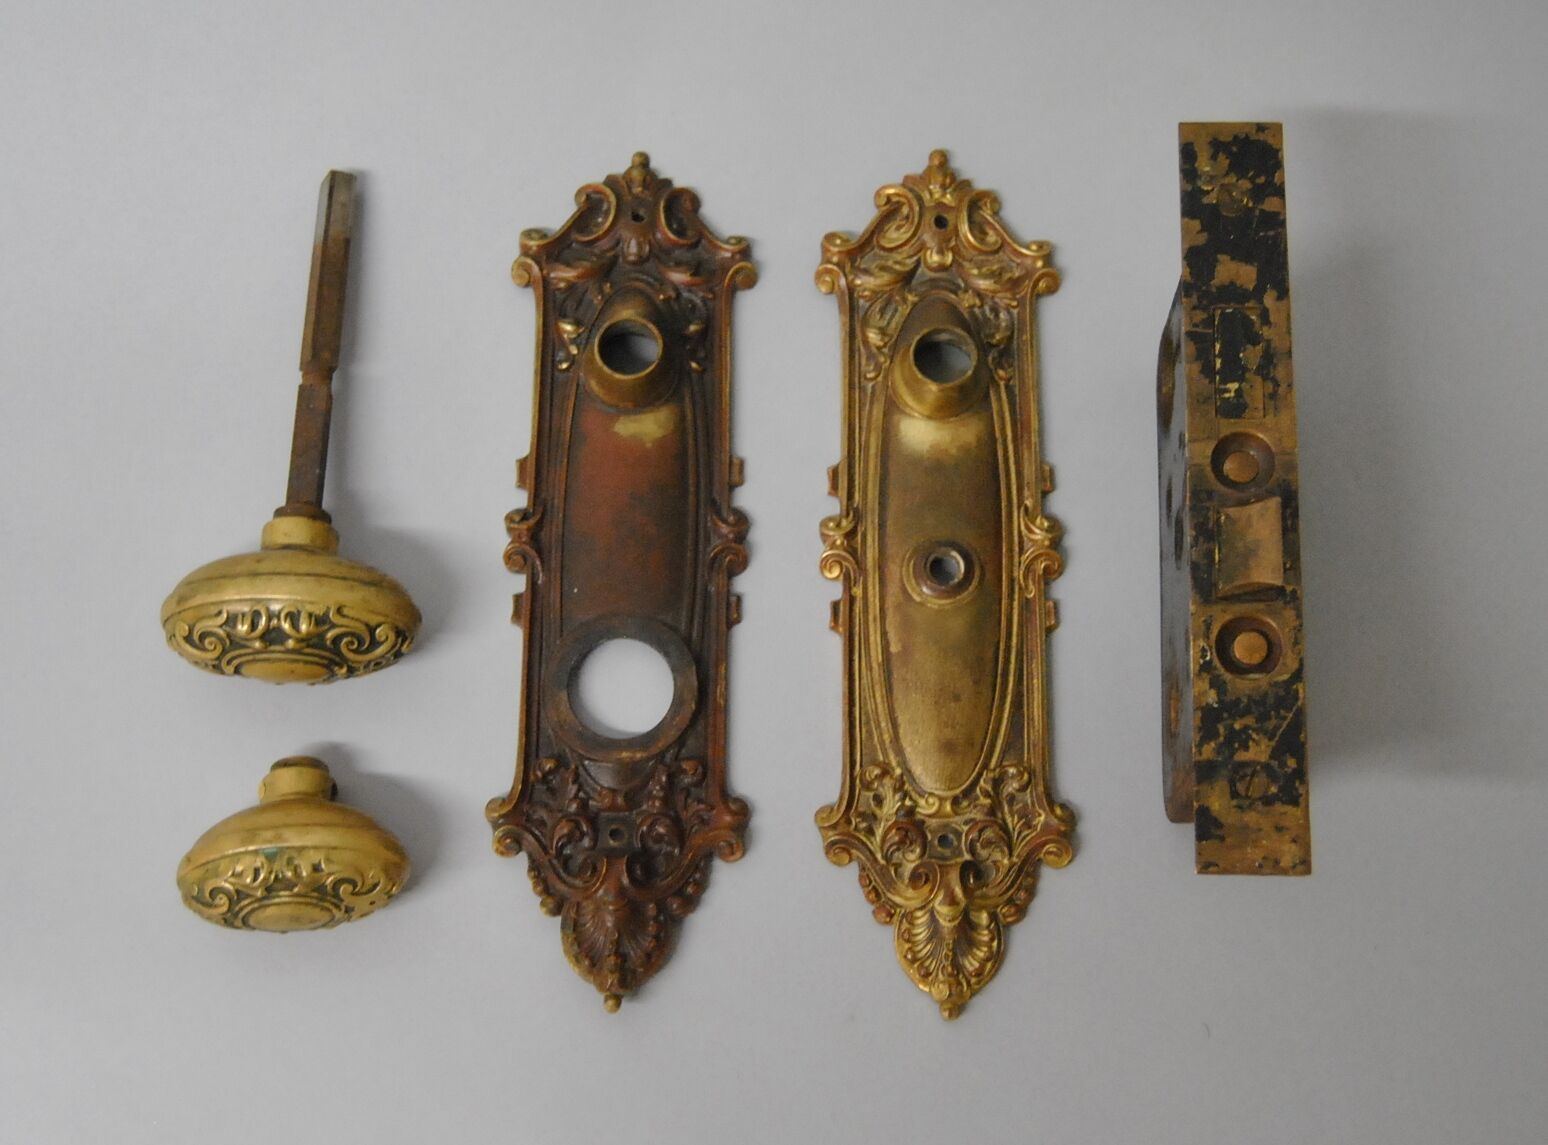 VICTORIAN-YALE-HEAVY-CAST-BRASS-DOOR-PLATES-KNOB- - VICTORIAN YALE HEAVY CAST BRASS DOOR PLATES KNOB & LOCK SET